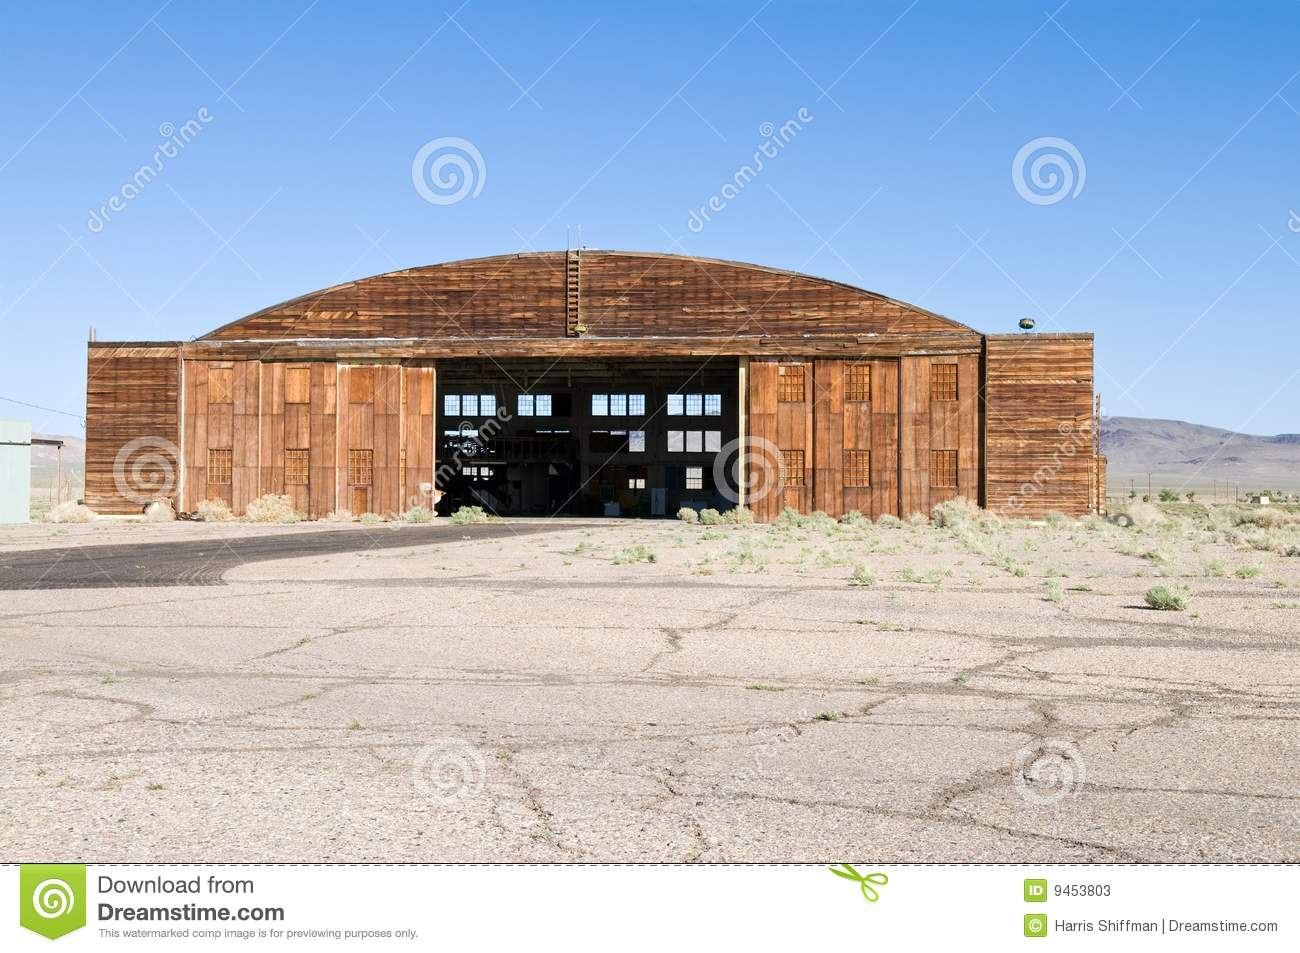 Wooden hangar for aircraft, Tonopah Airport, Tonopah, Nevada.